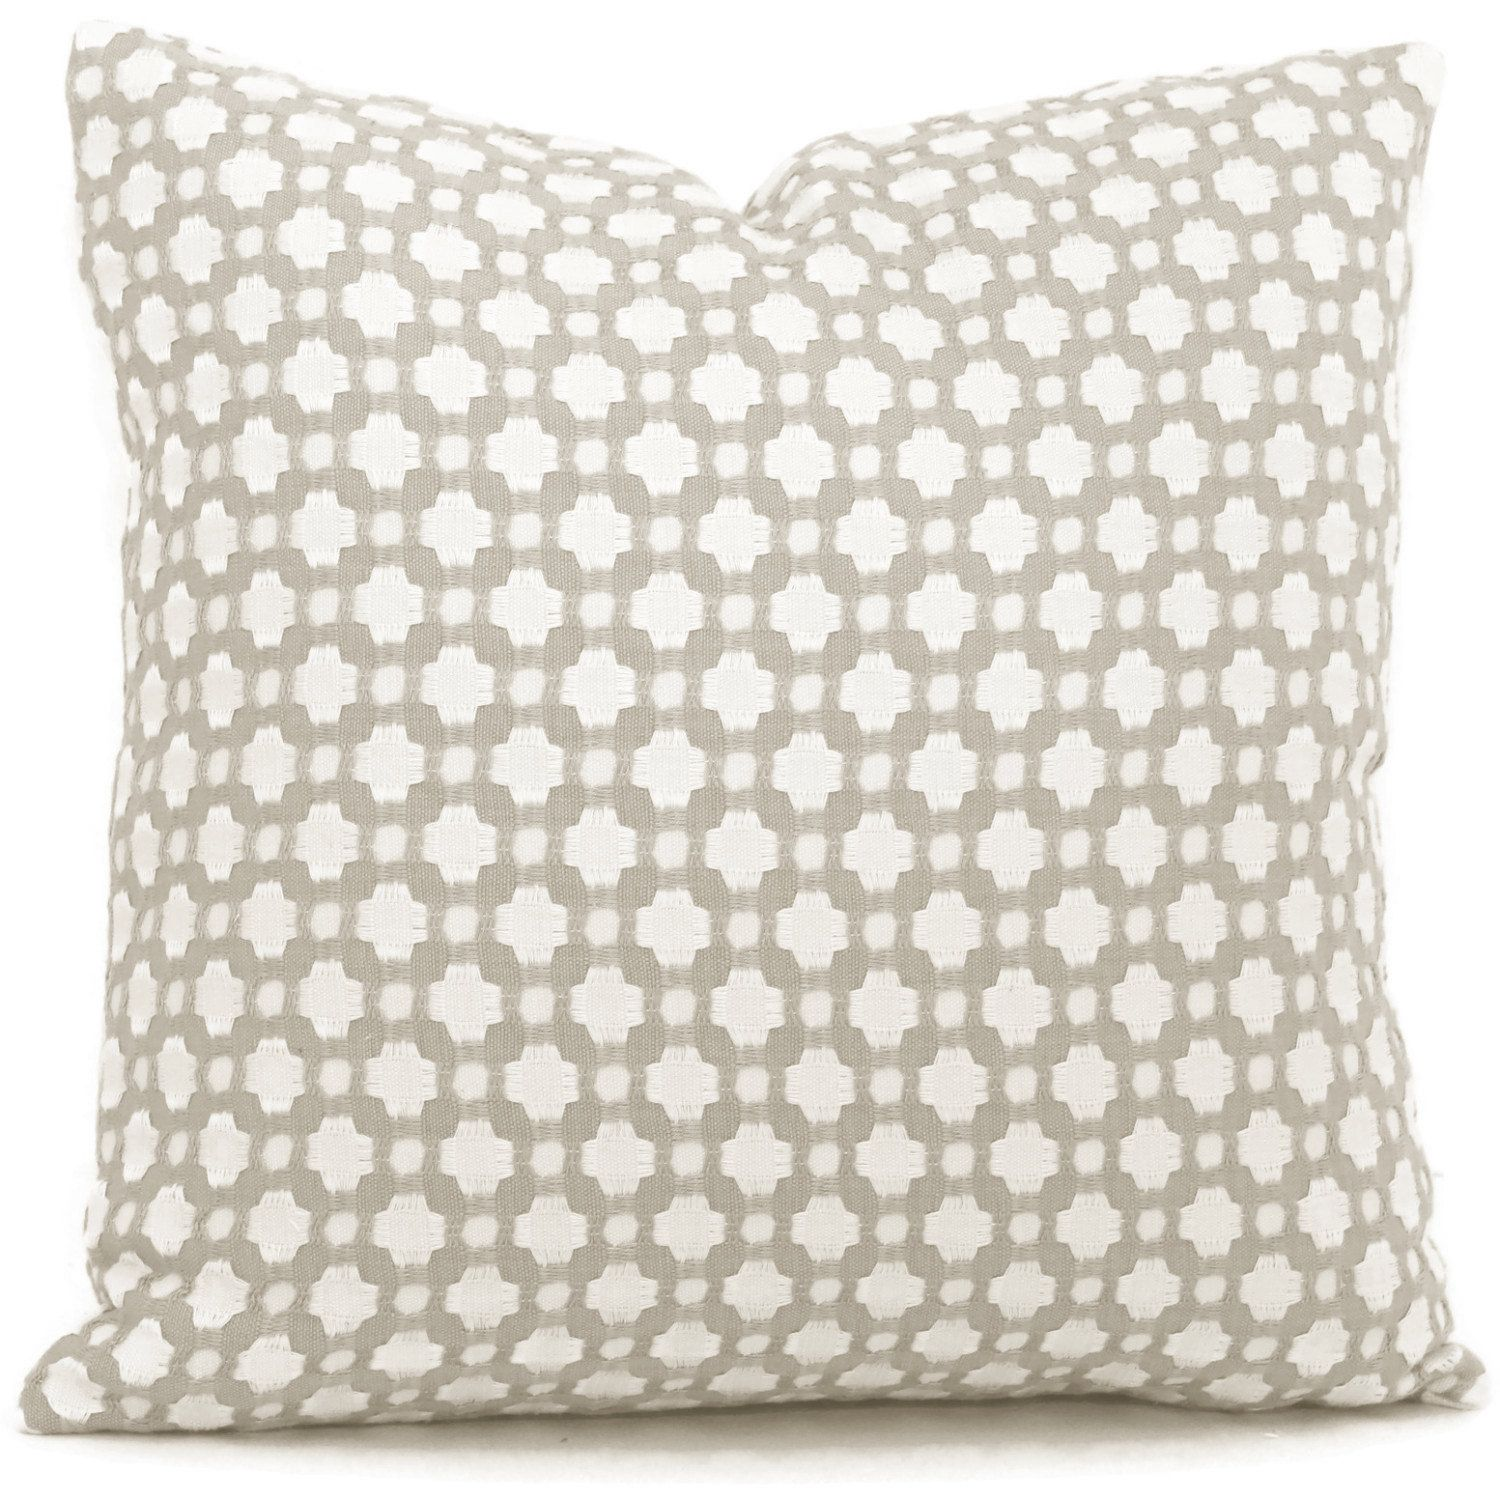 Schumacher Betwixt in Stone and White Decorative Pillow Cover